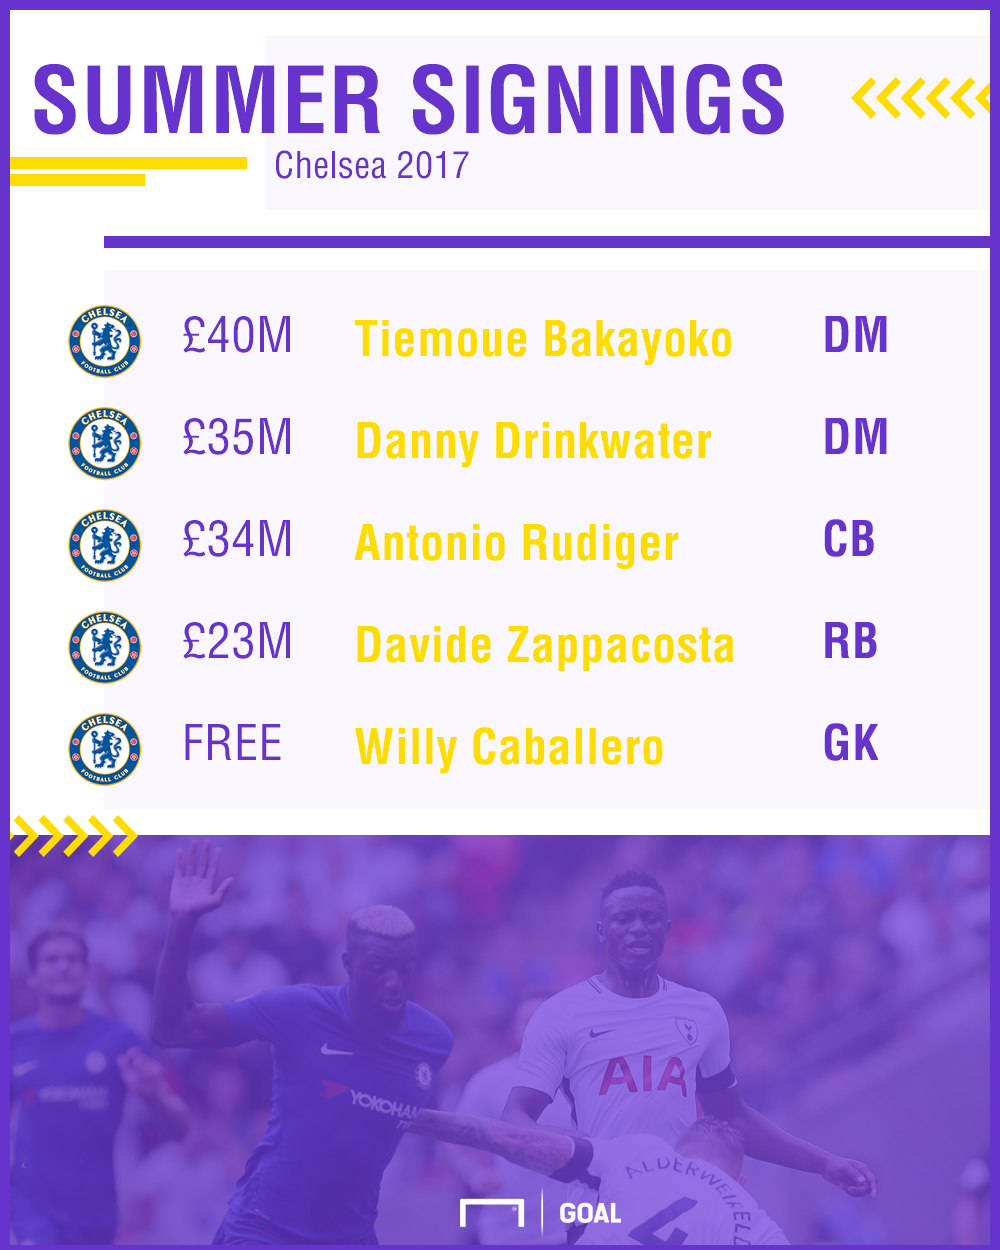 Chelsea defensive summer signings 2017